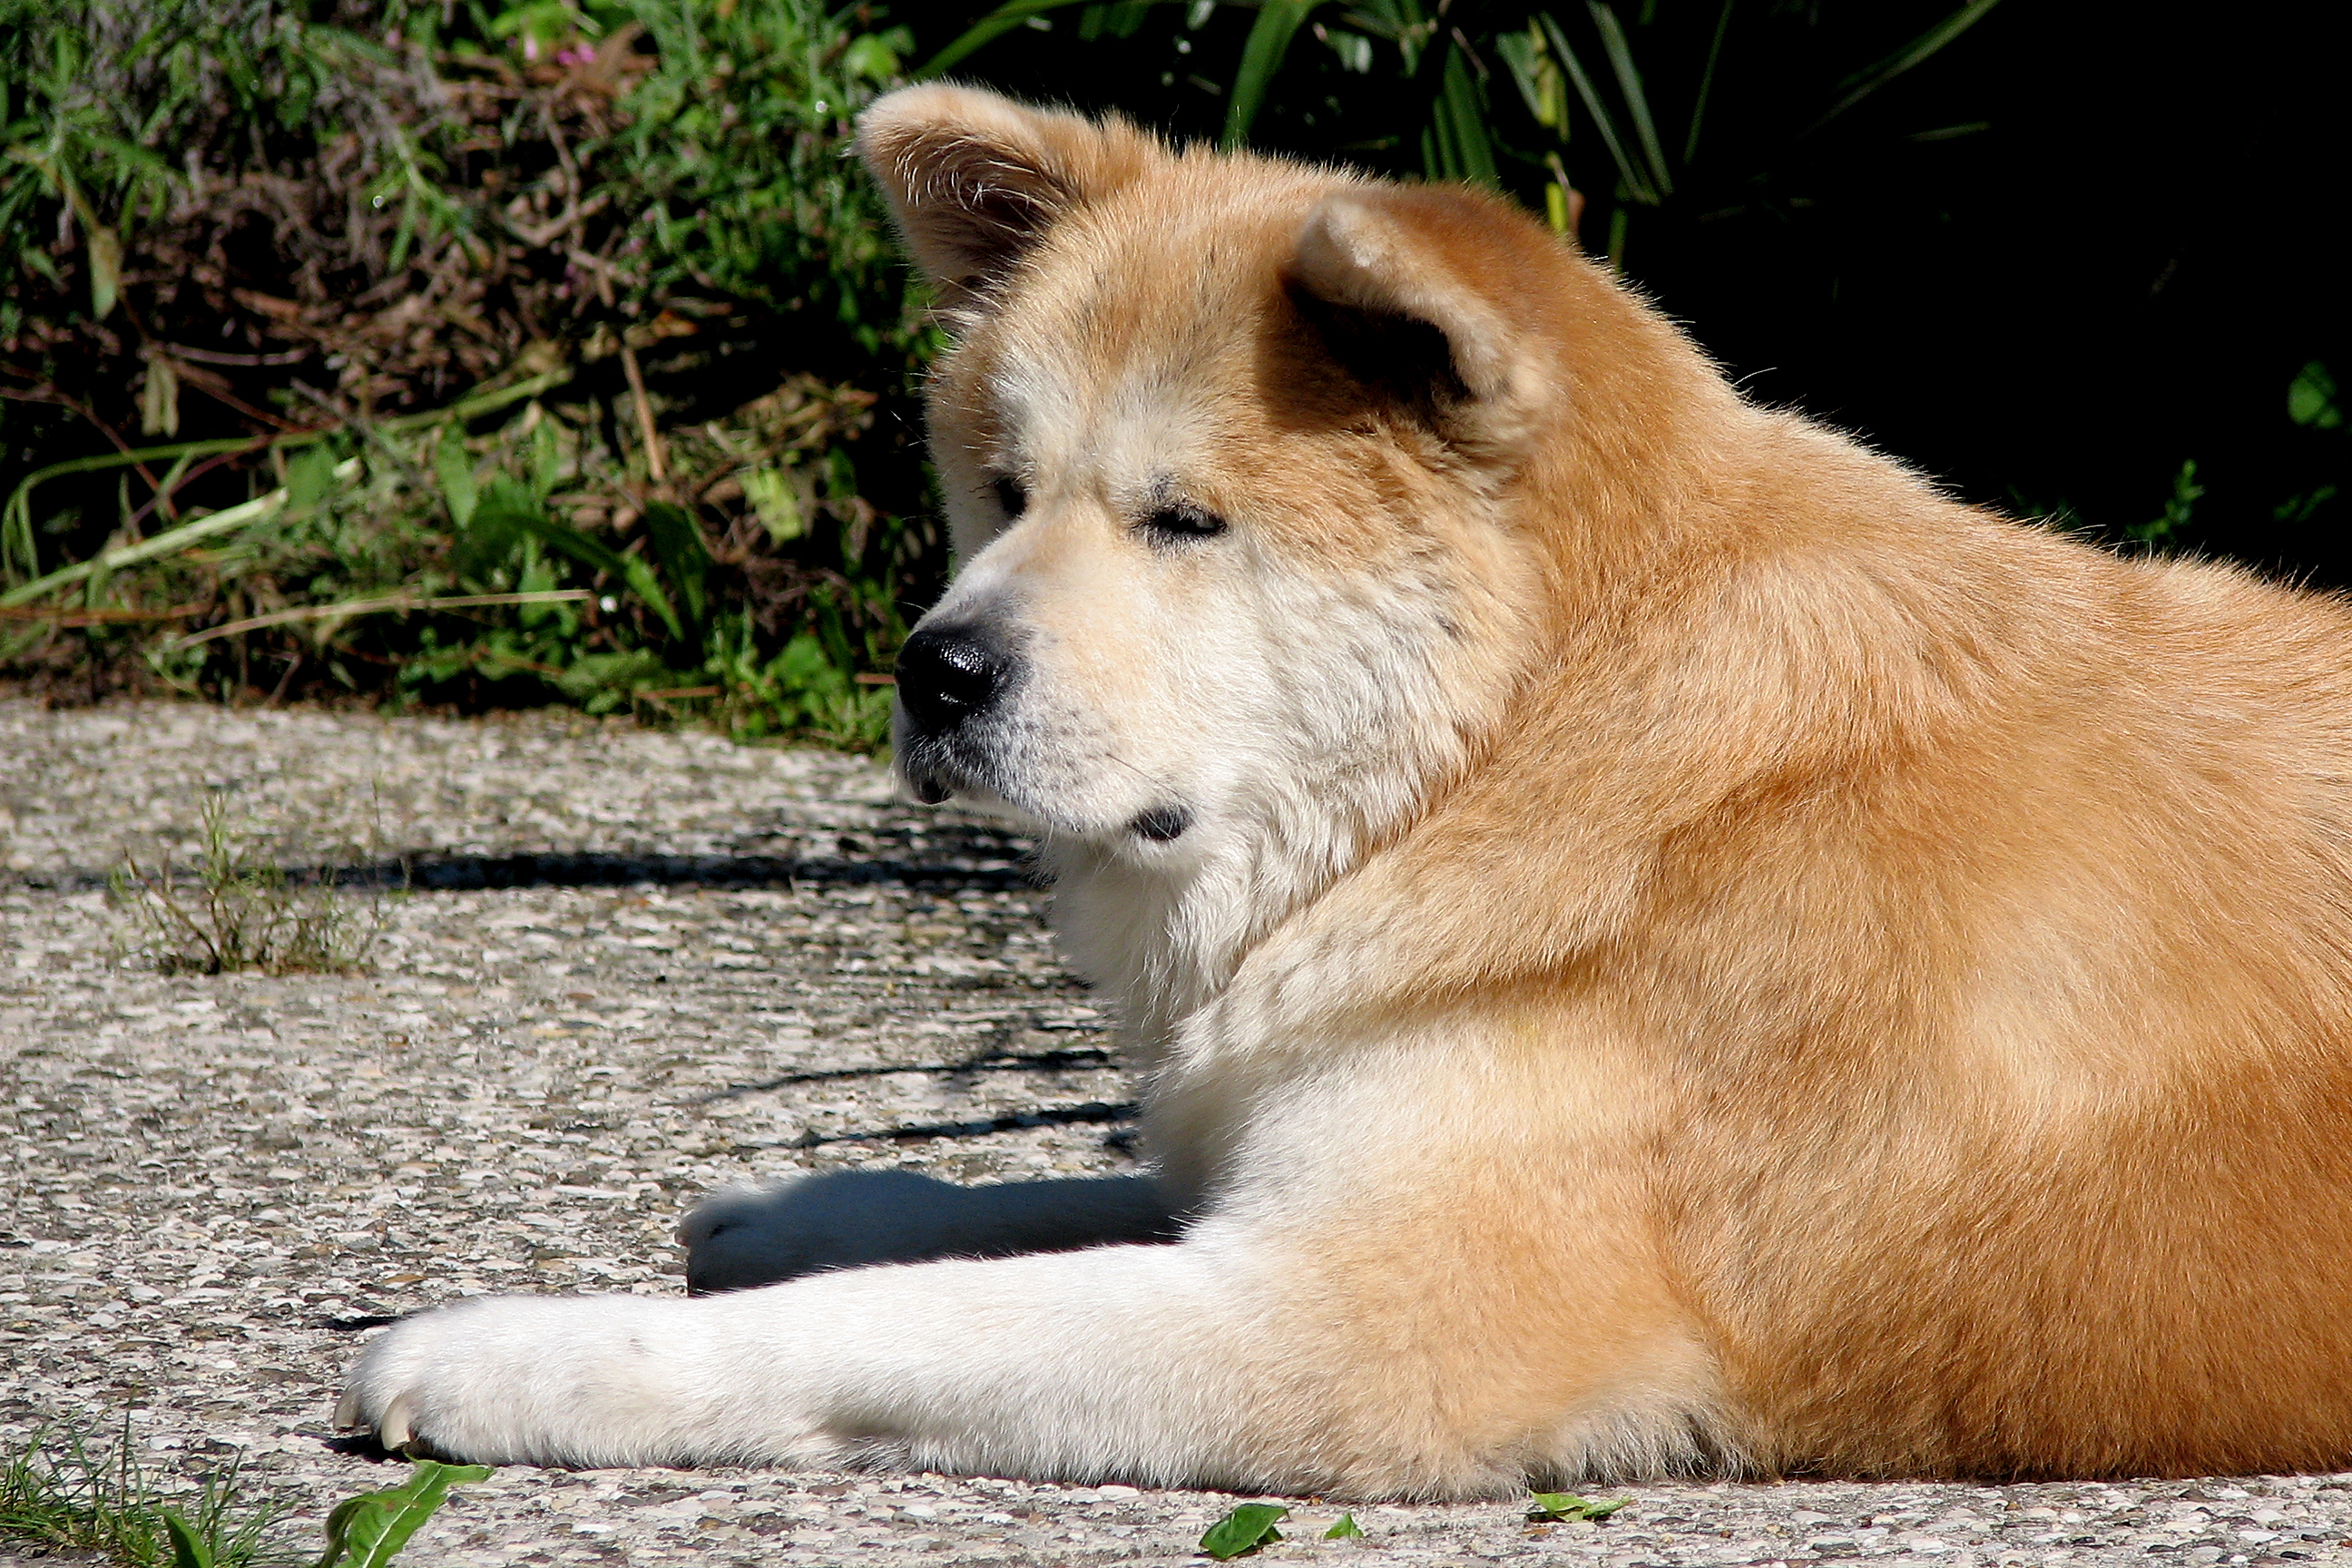 Old Akita Inu dog wallpaper